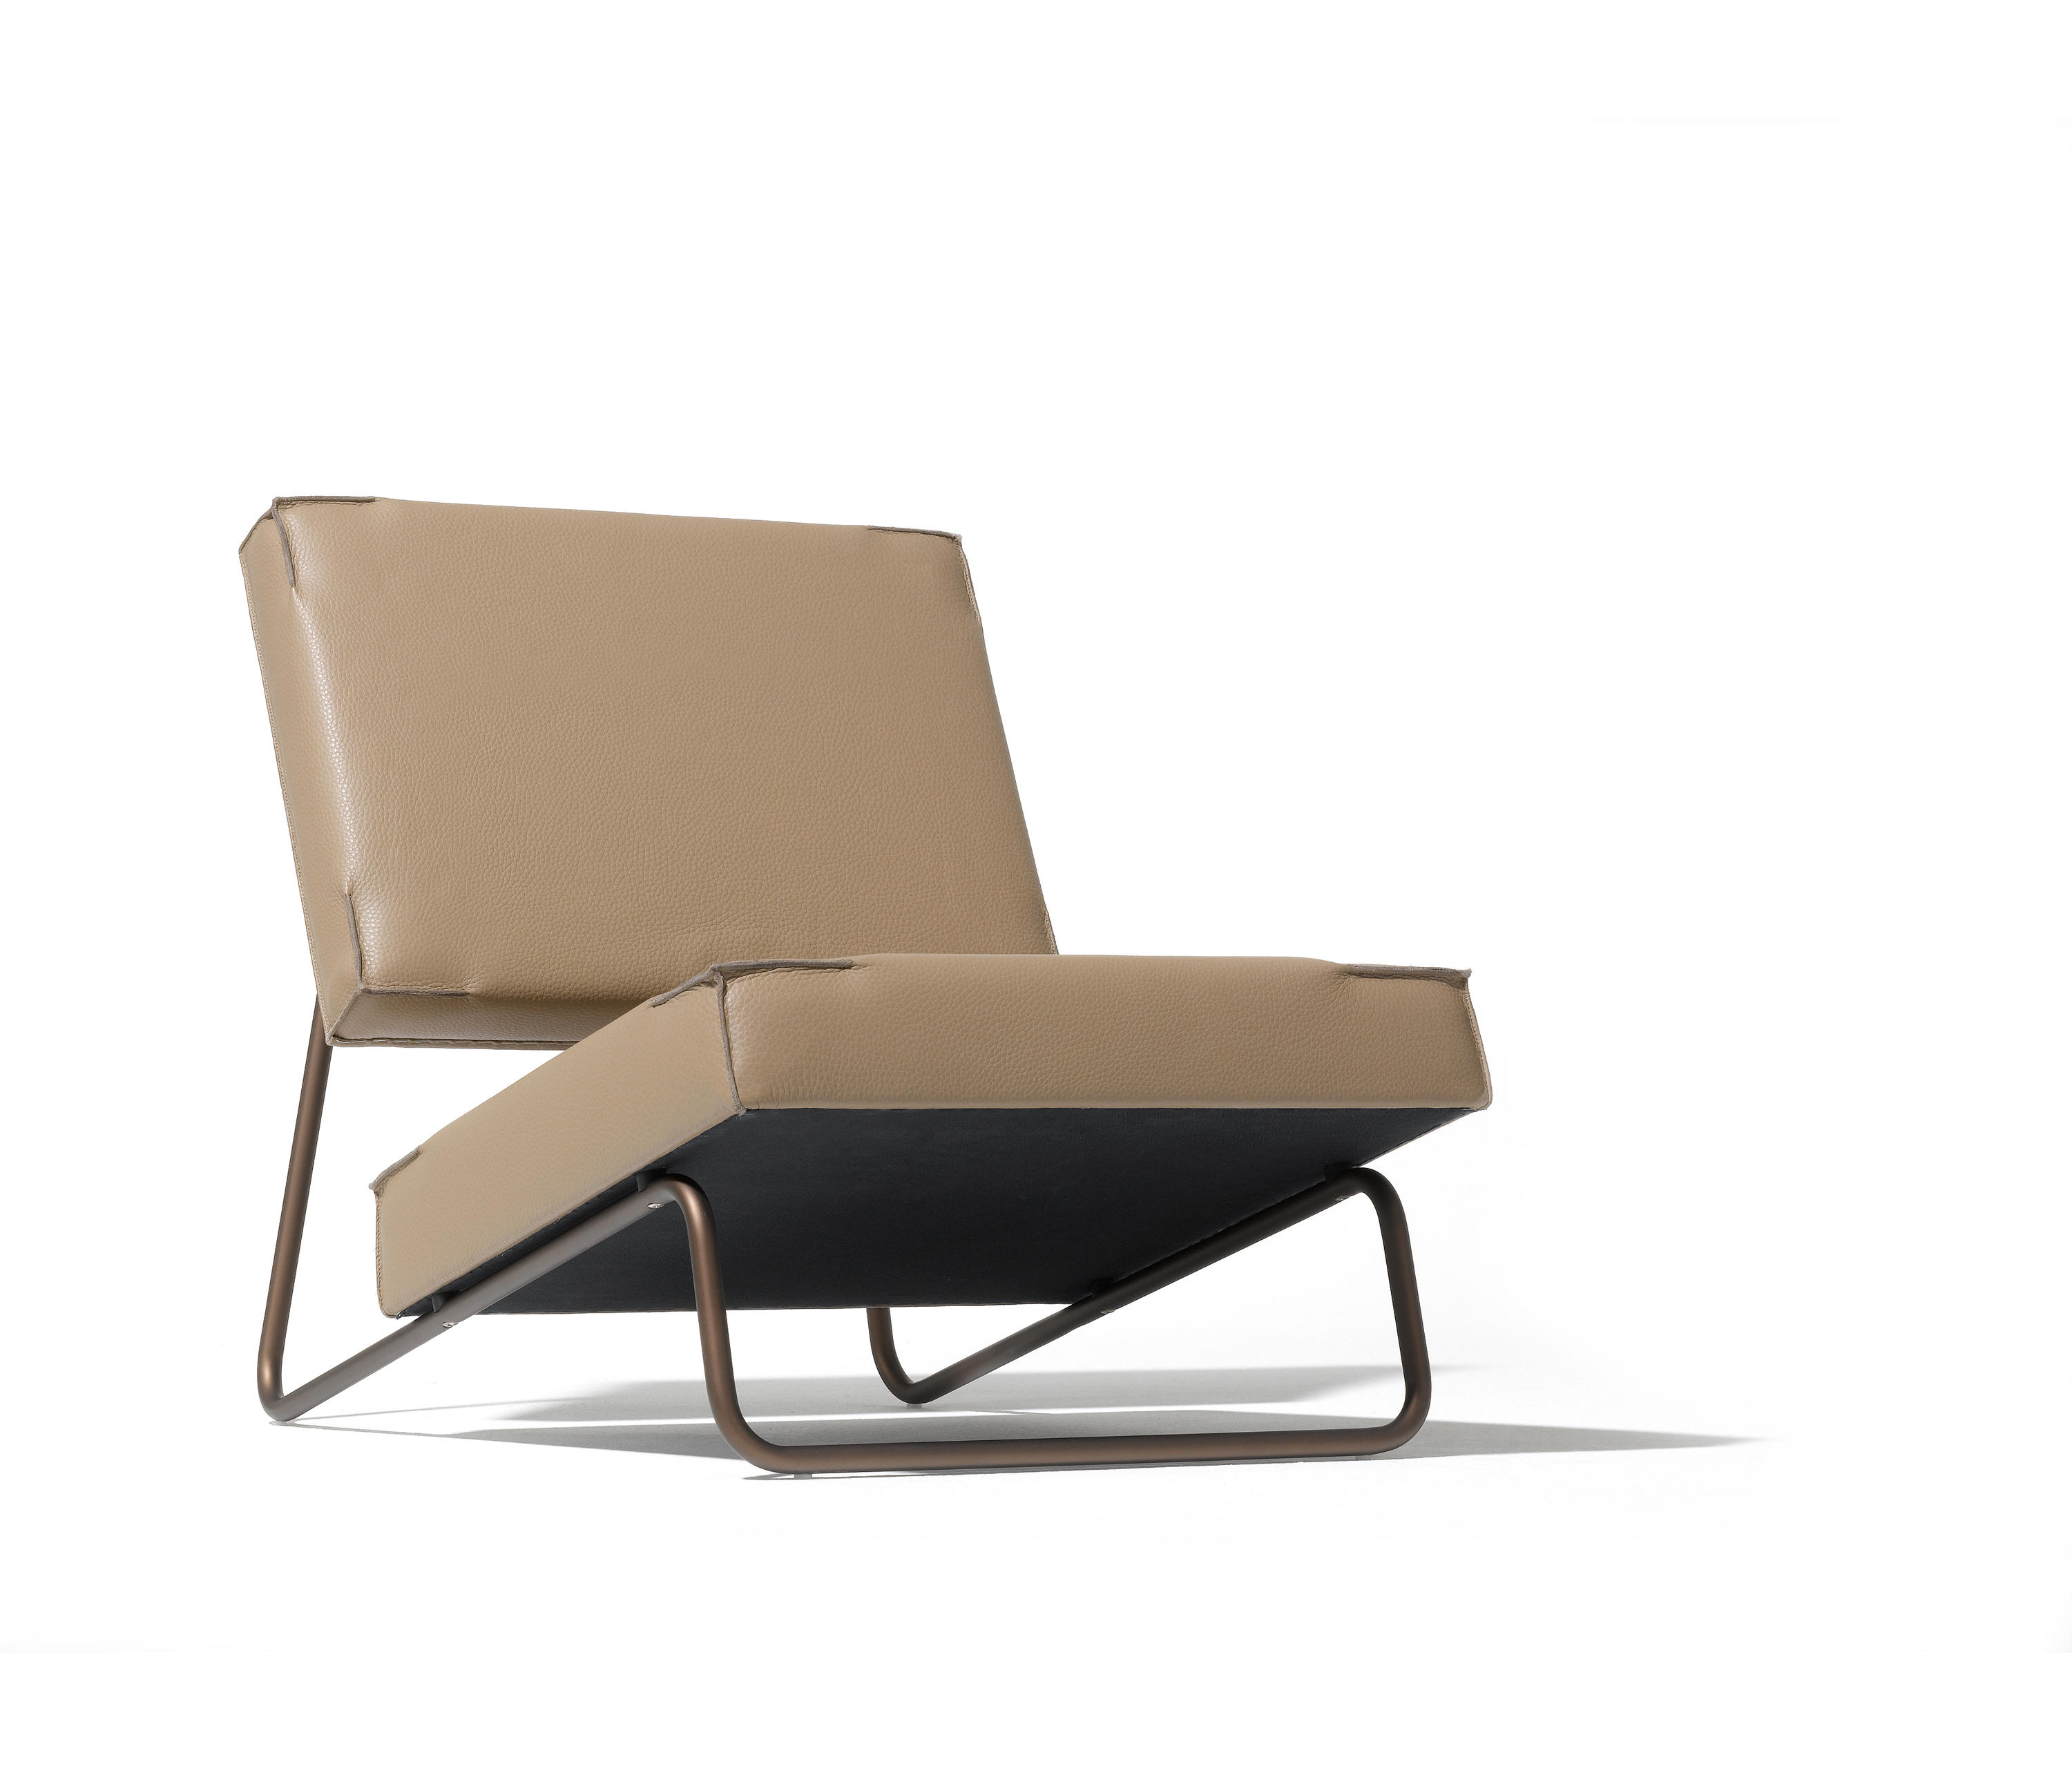 lounge chair hirche sessel von richard lampert architonic. Black Bedroom Furniture Sets. Home Design Ideas